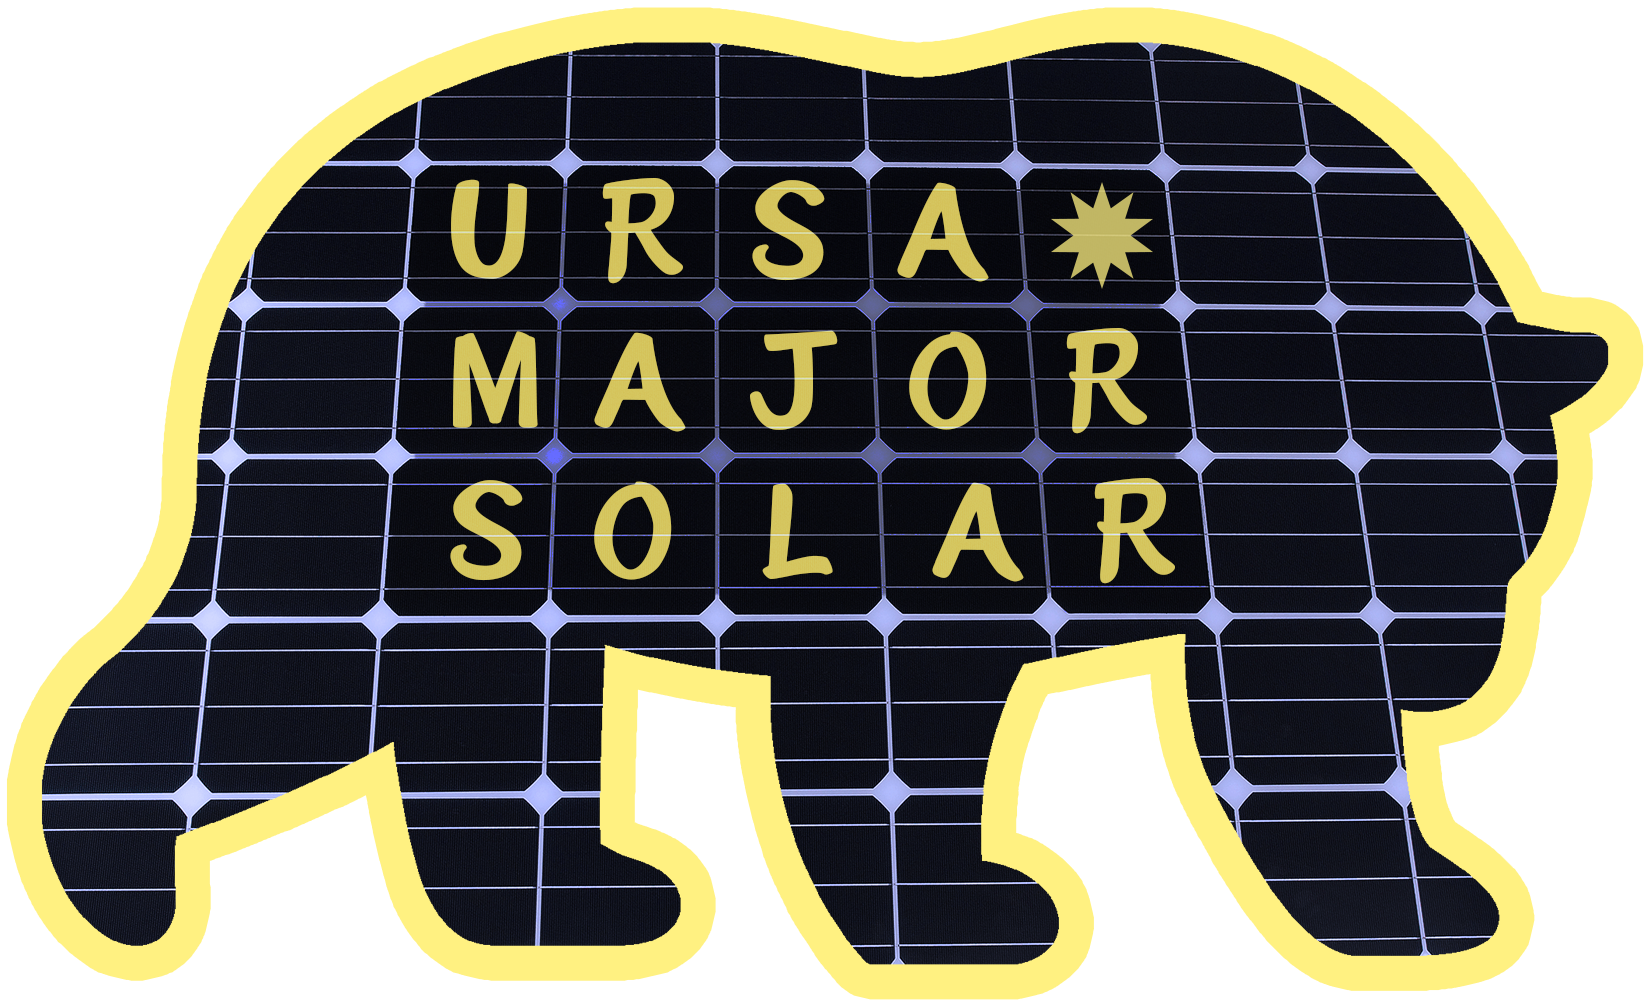 Logotipo de Osa Mayor Solar, Inc.